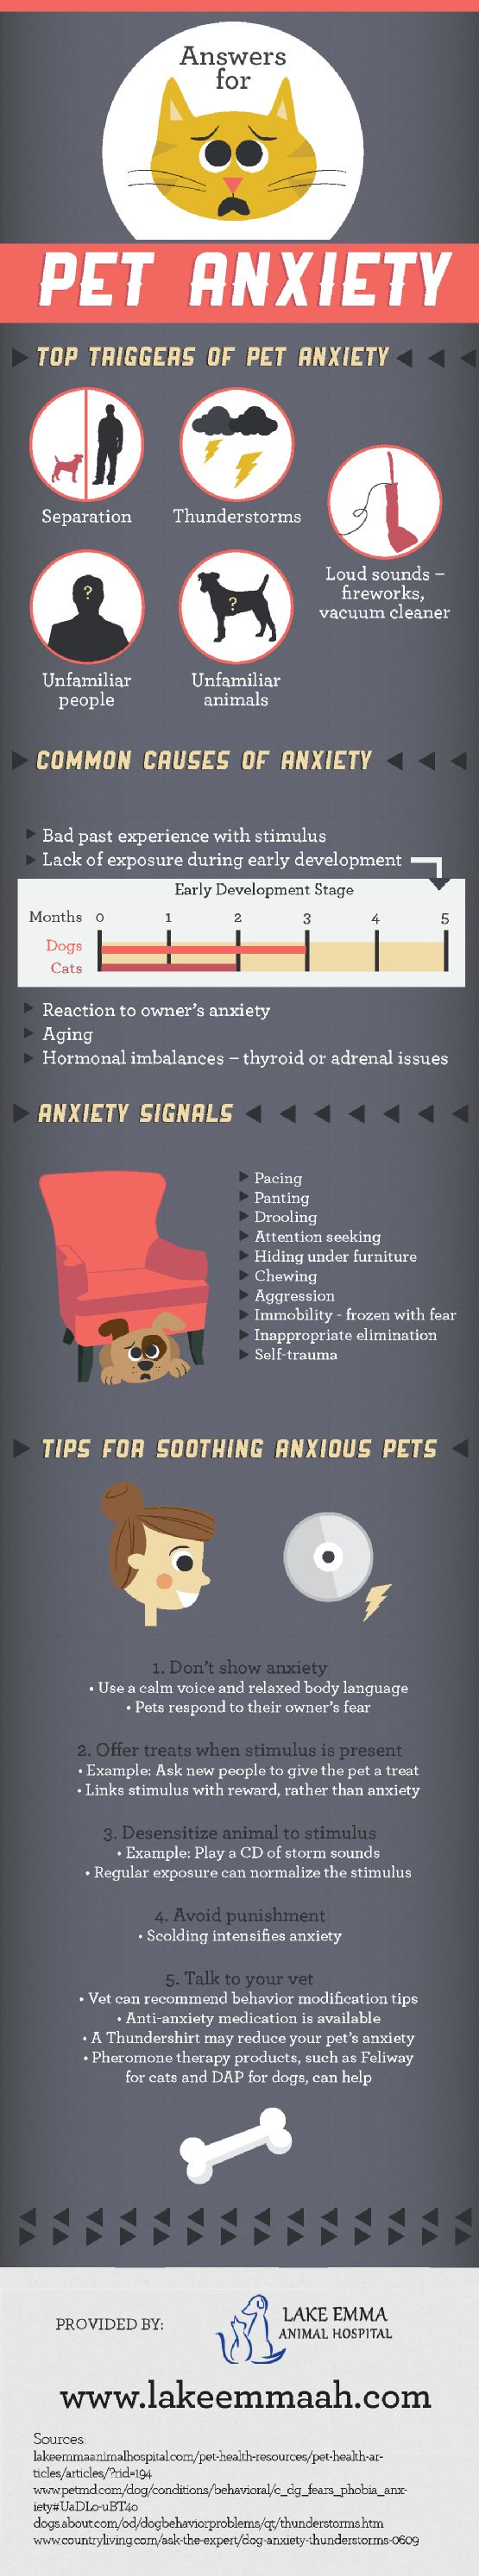 answers-for-pet-anxiety-infographic #caninecommunityreporters #wccrtv #pamppllc #caninemarketing #petinfographics #doginfographics #dogs